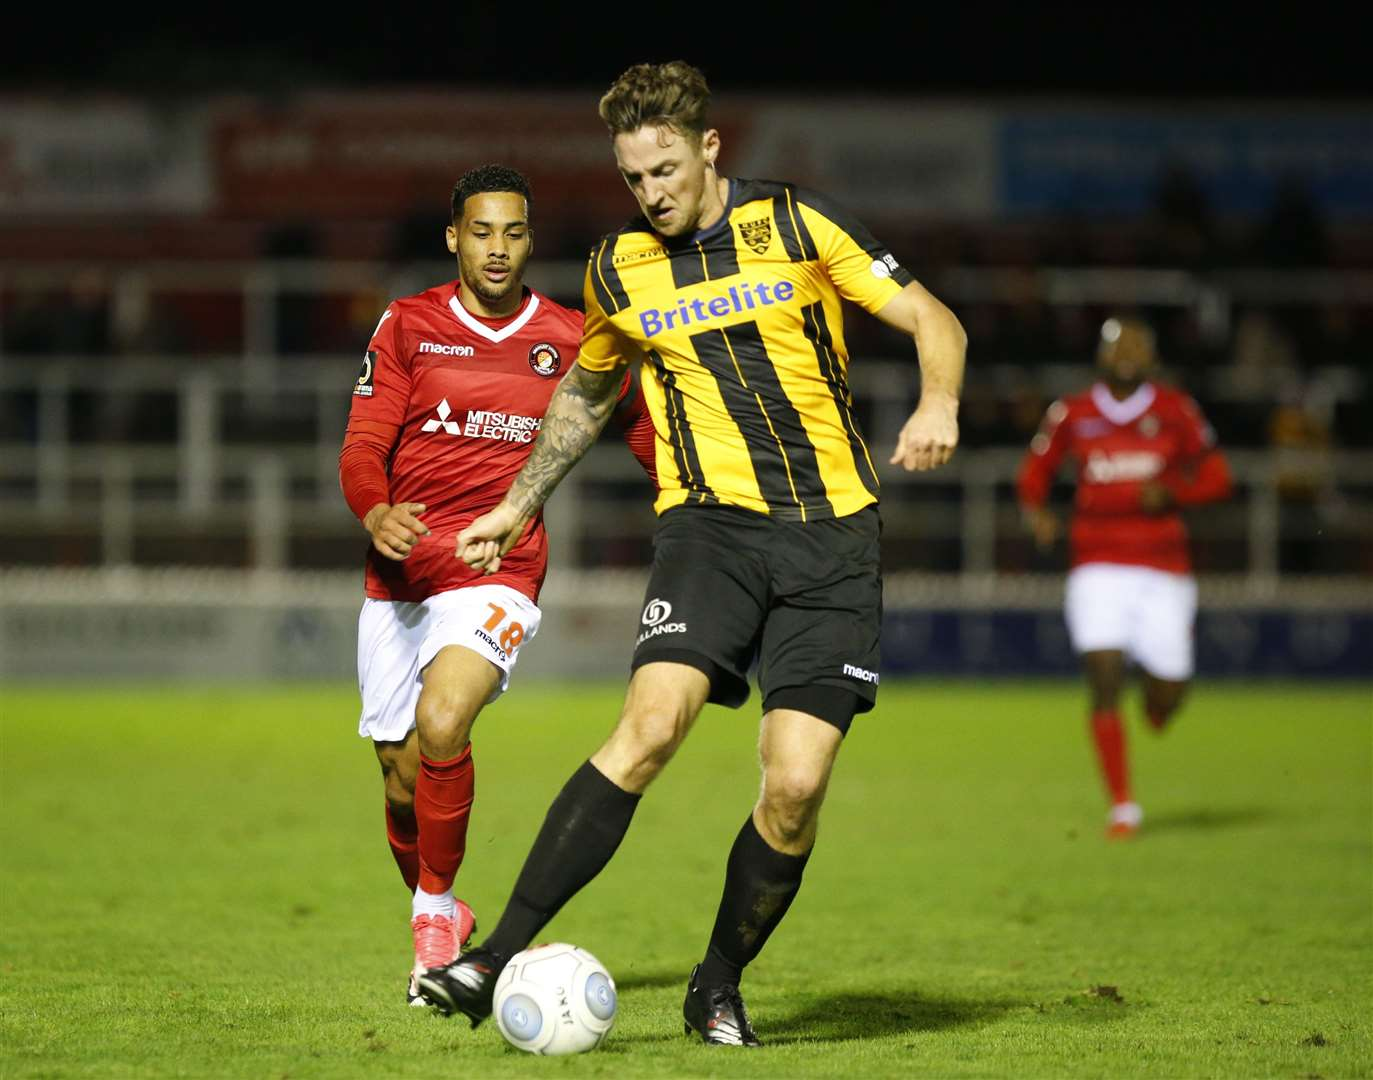 Rob Swaine's Maidstone debut at Ebbsfleet Picture: Andy Jones